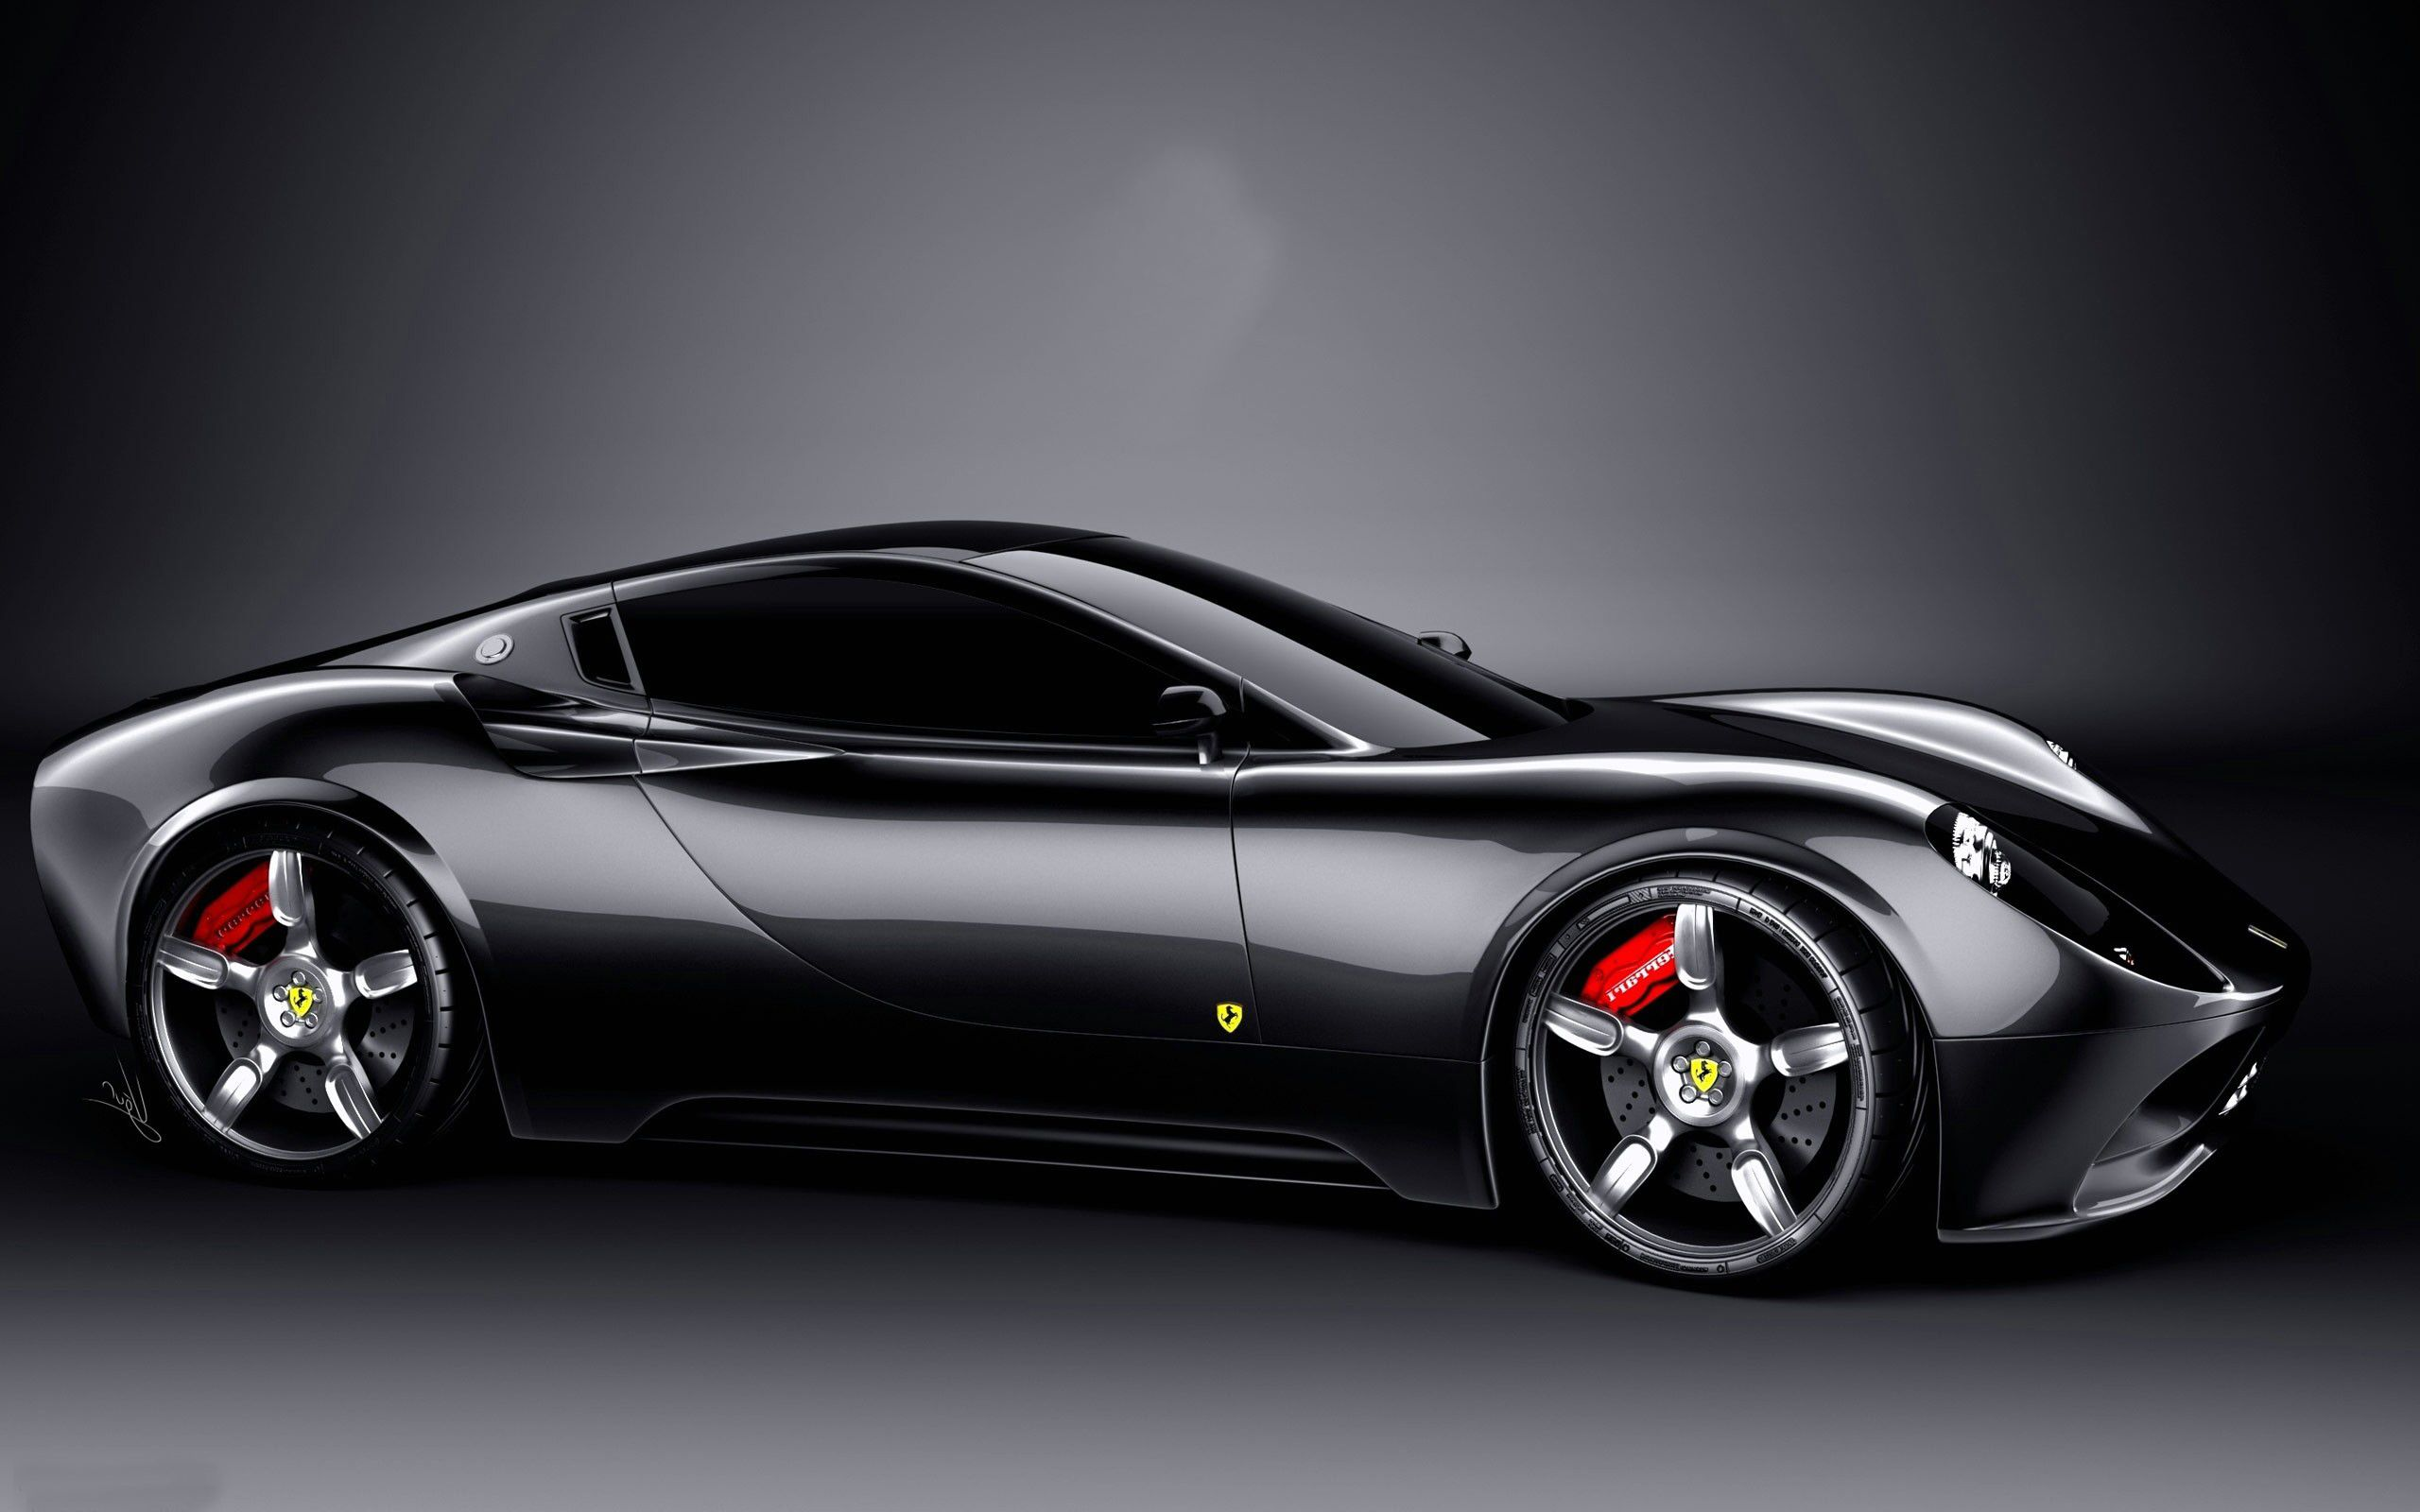 Amazing Ferrari Car Black Hd Wallpapers